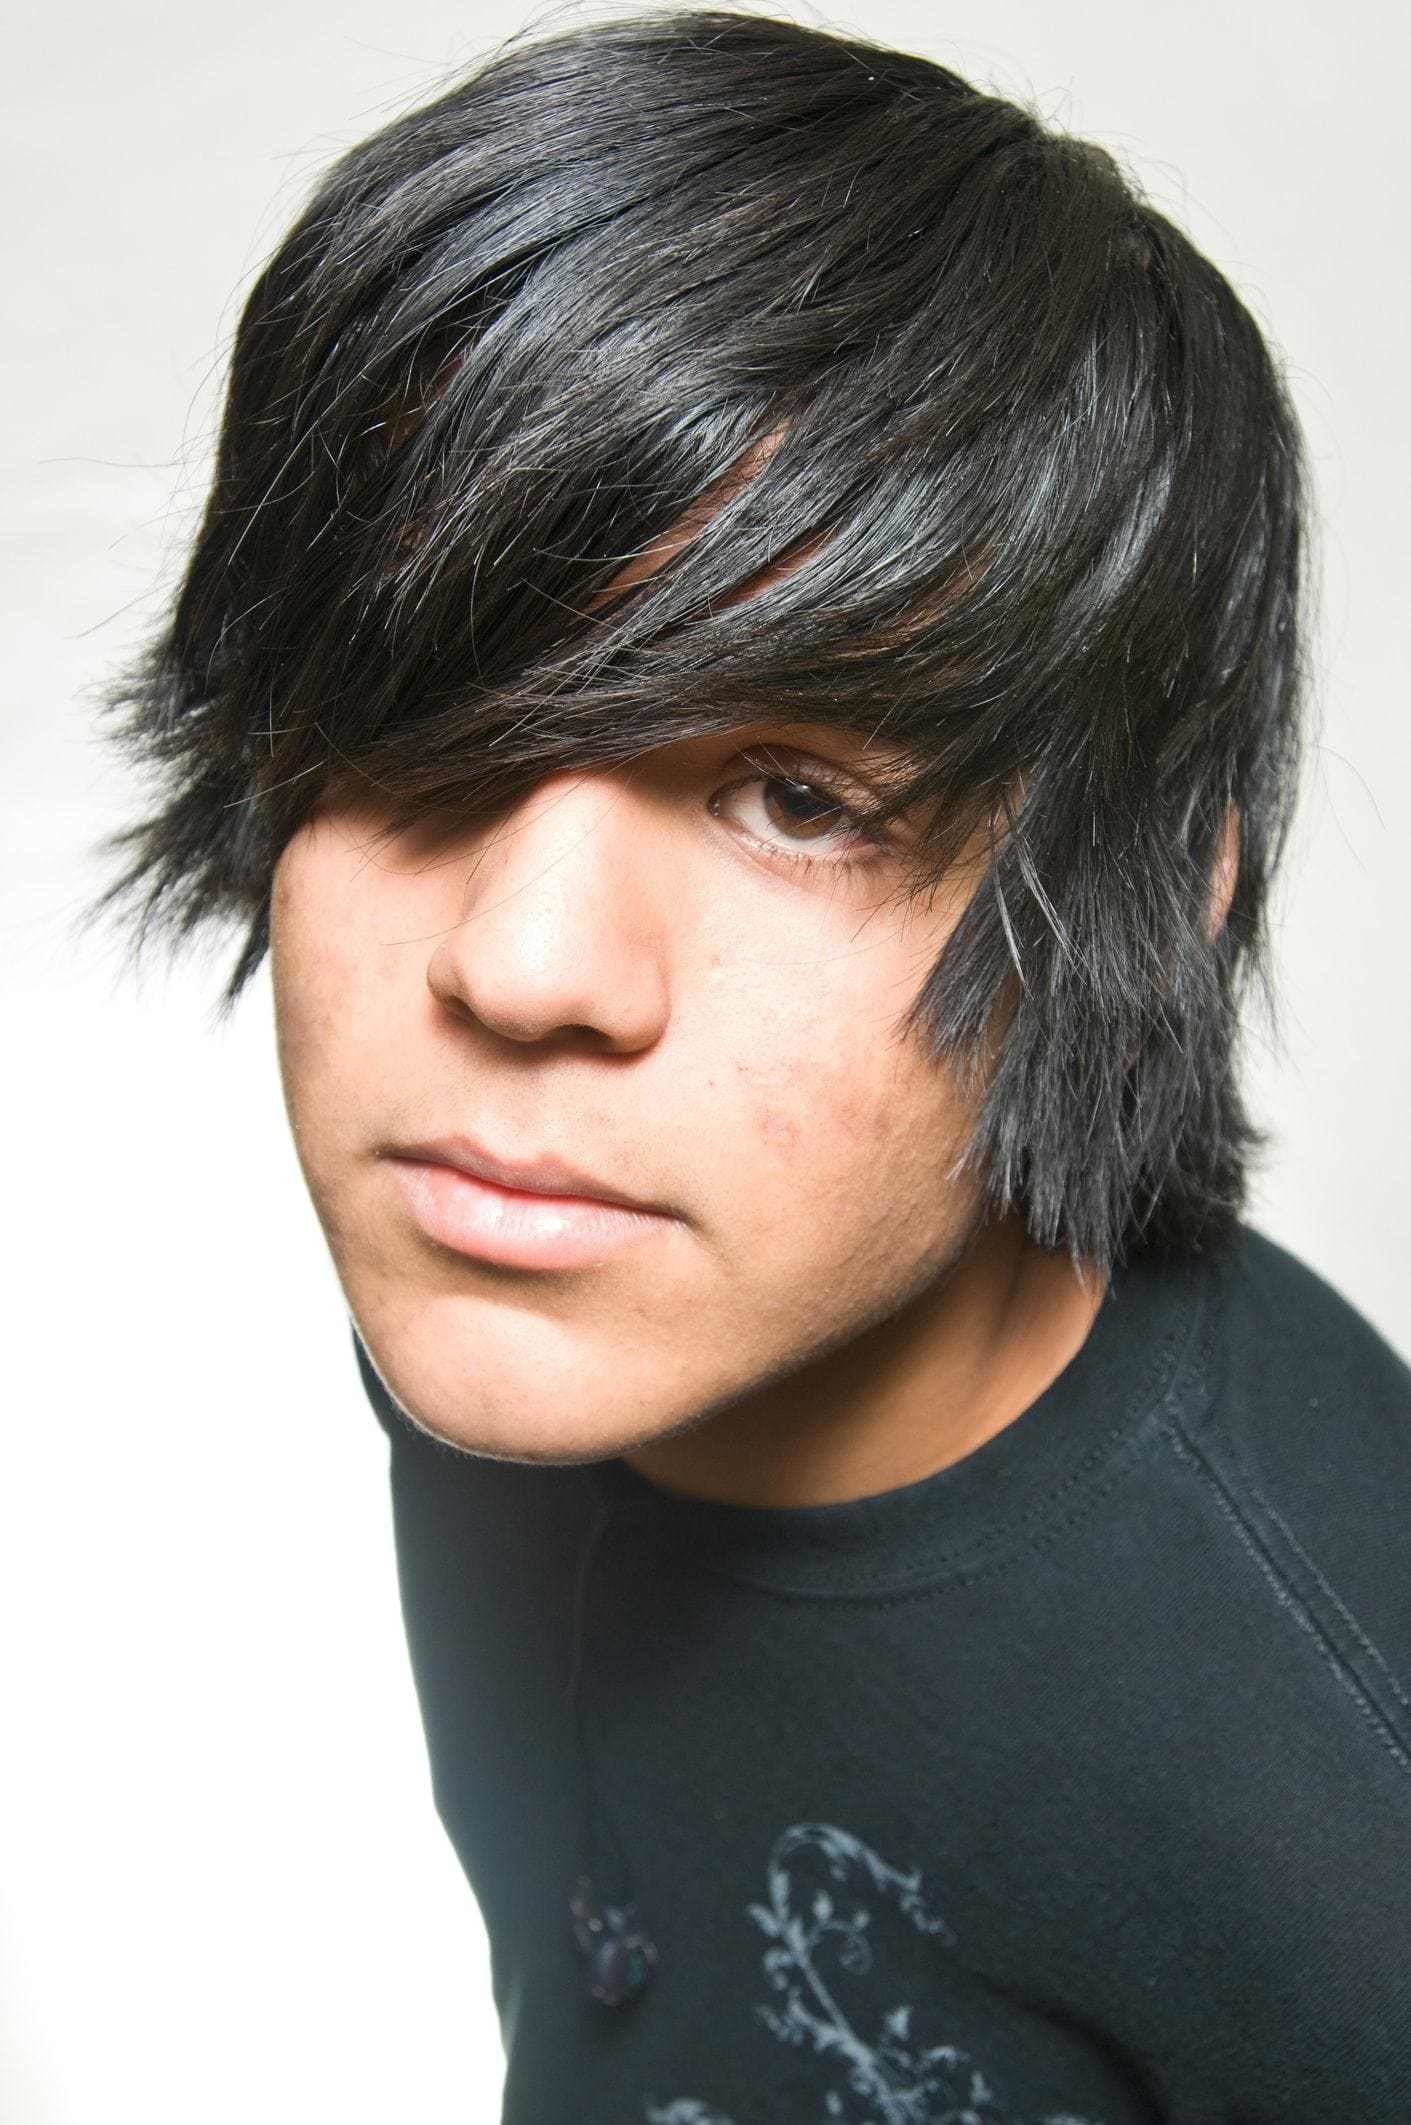 The Best Emo Hairstyles For Guys Flattering Ways To Rock A Punk Look Pictures